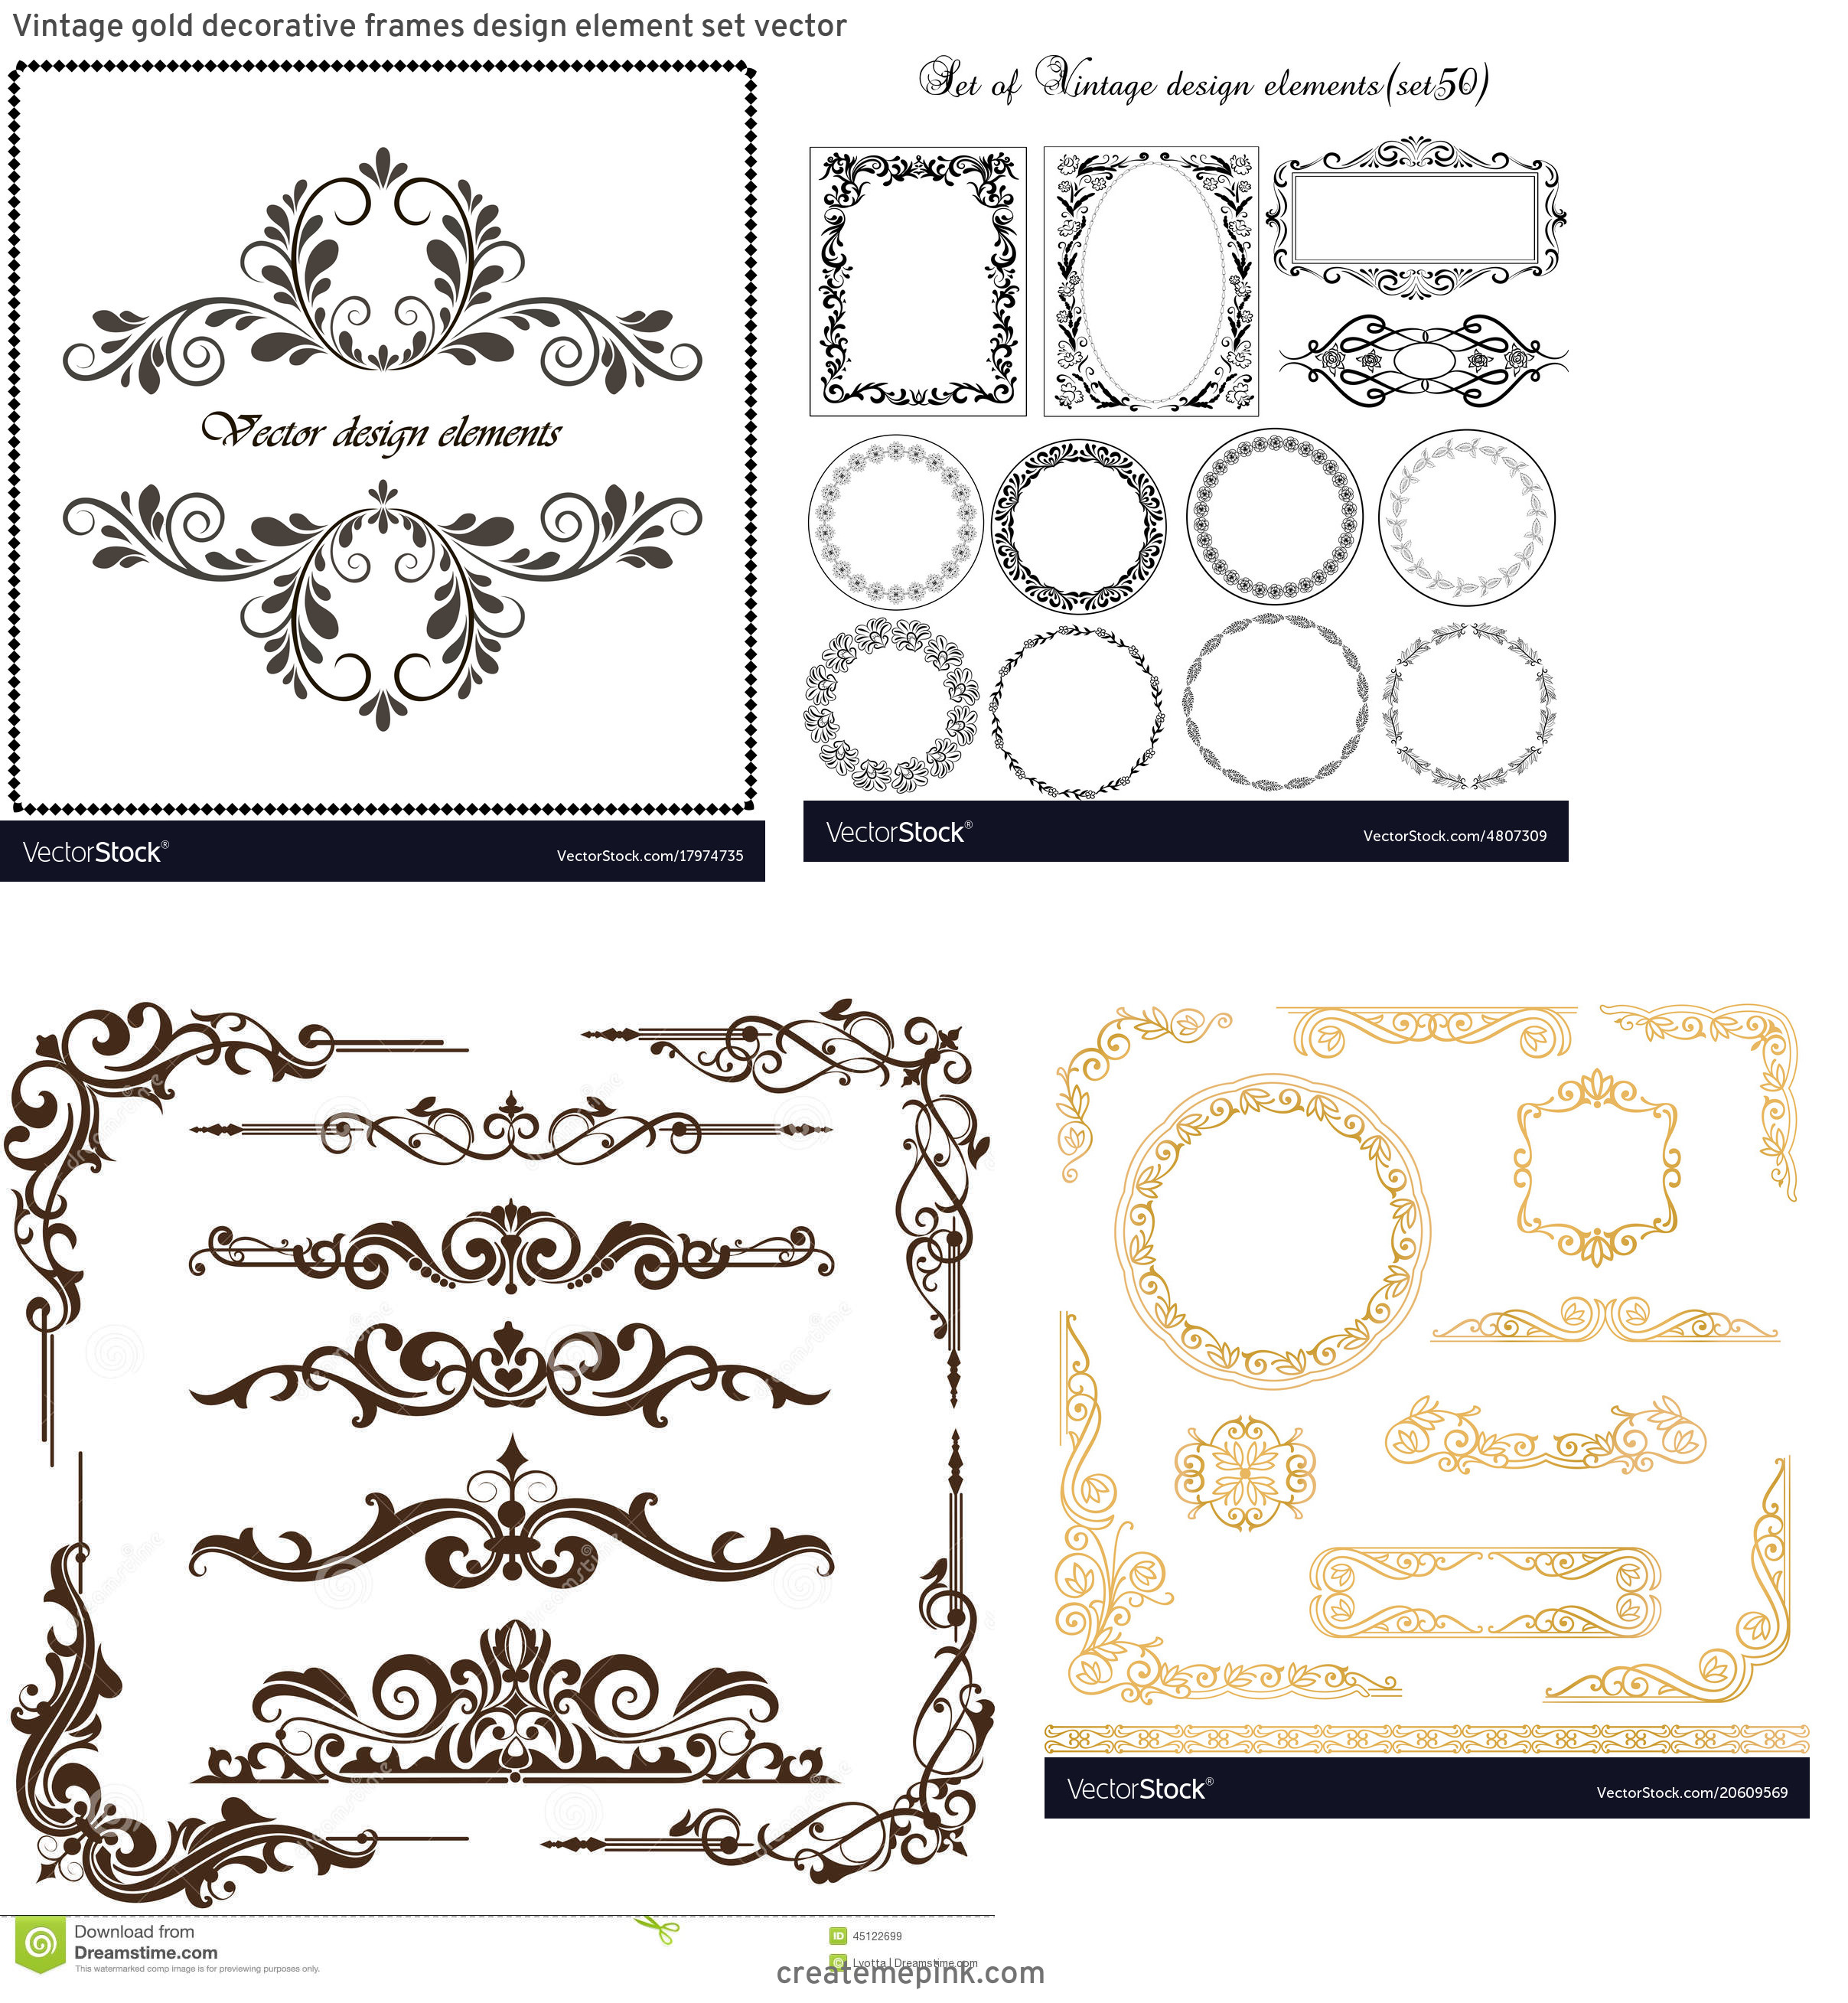 Elements Of Vector Vintage Decorative Frame: Vintage Gold Decorative Frames Design Element Set Vector